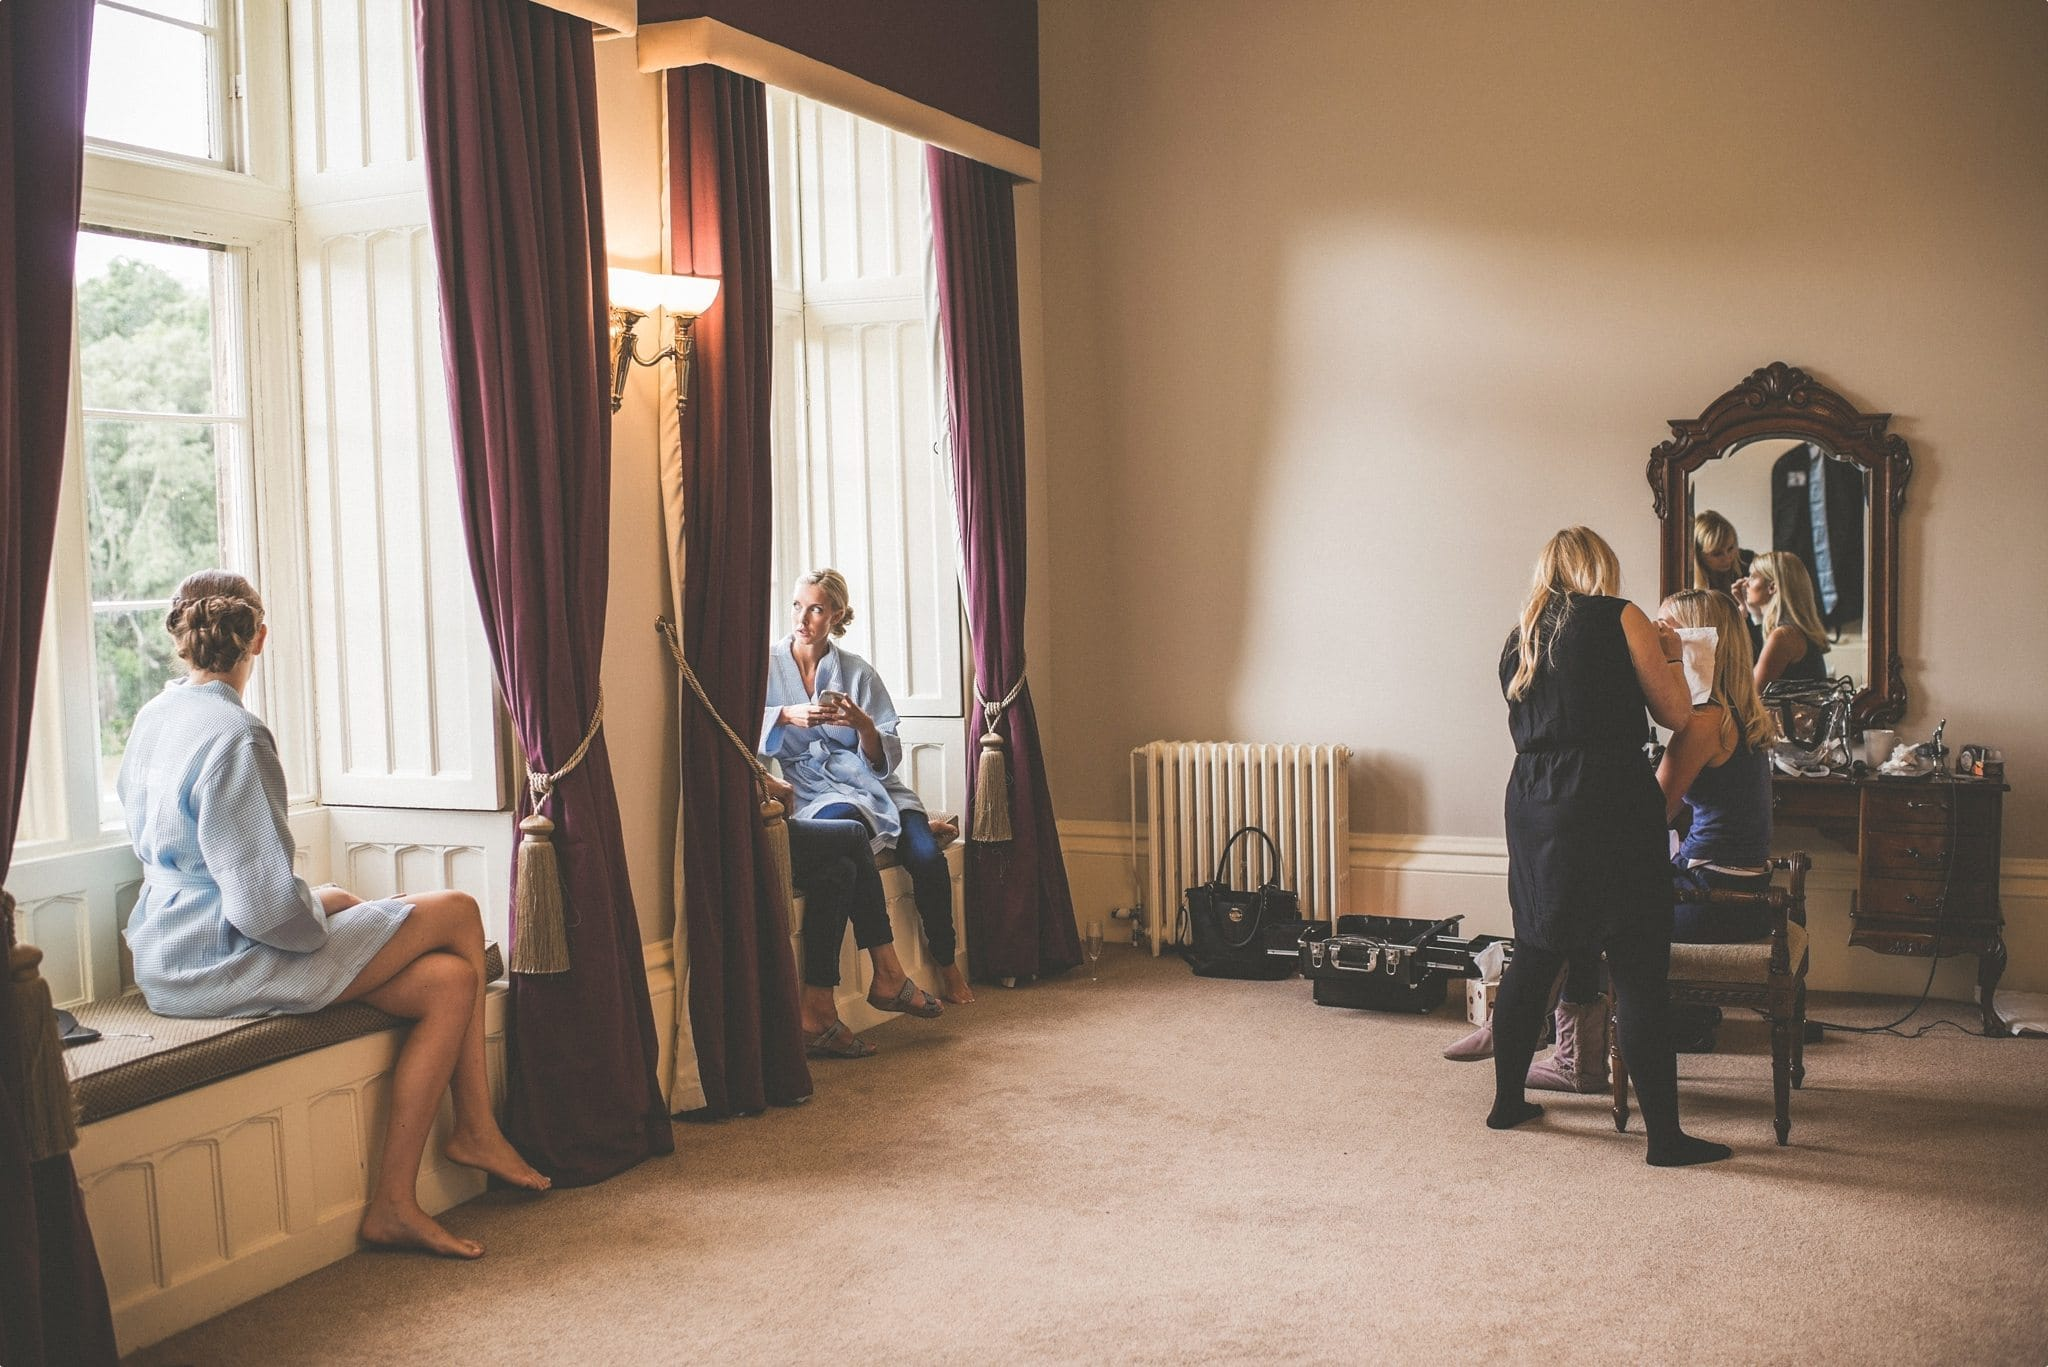 st-audries-park-wedding-maria-assia-photography-80